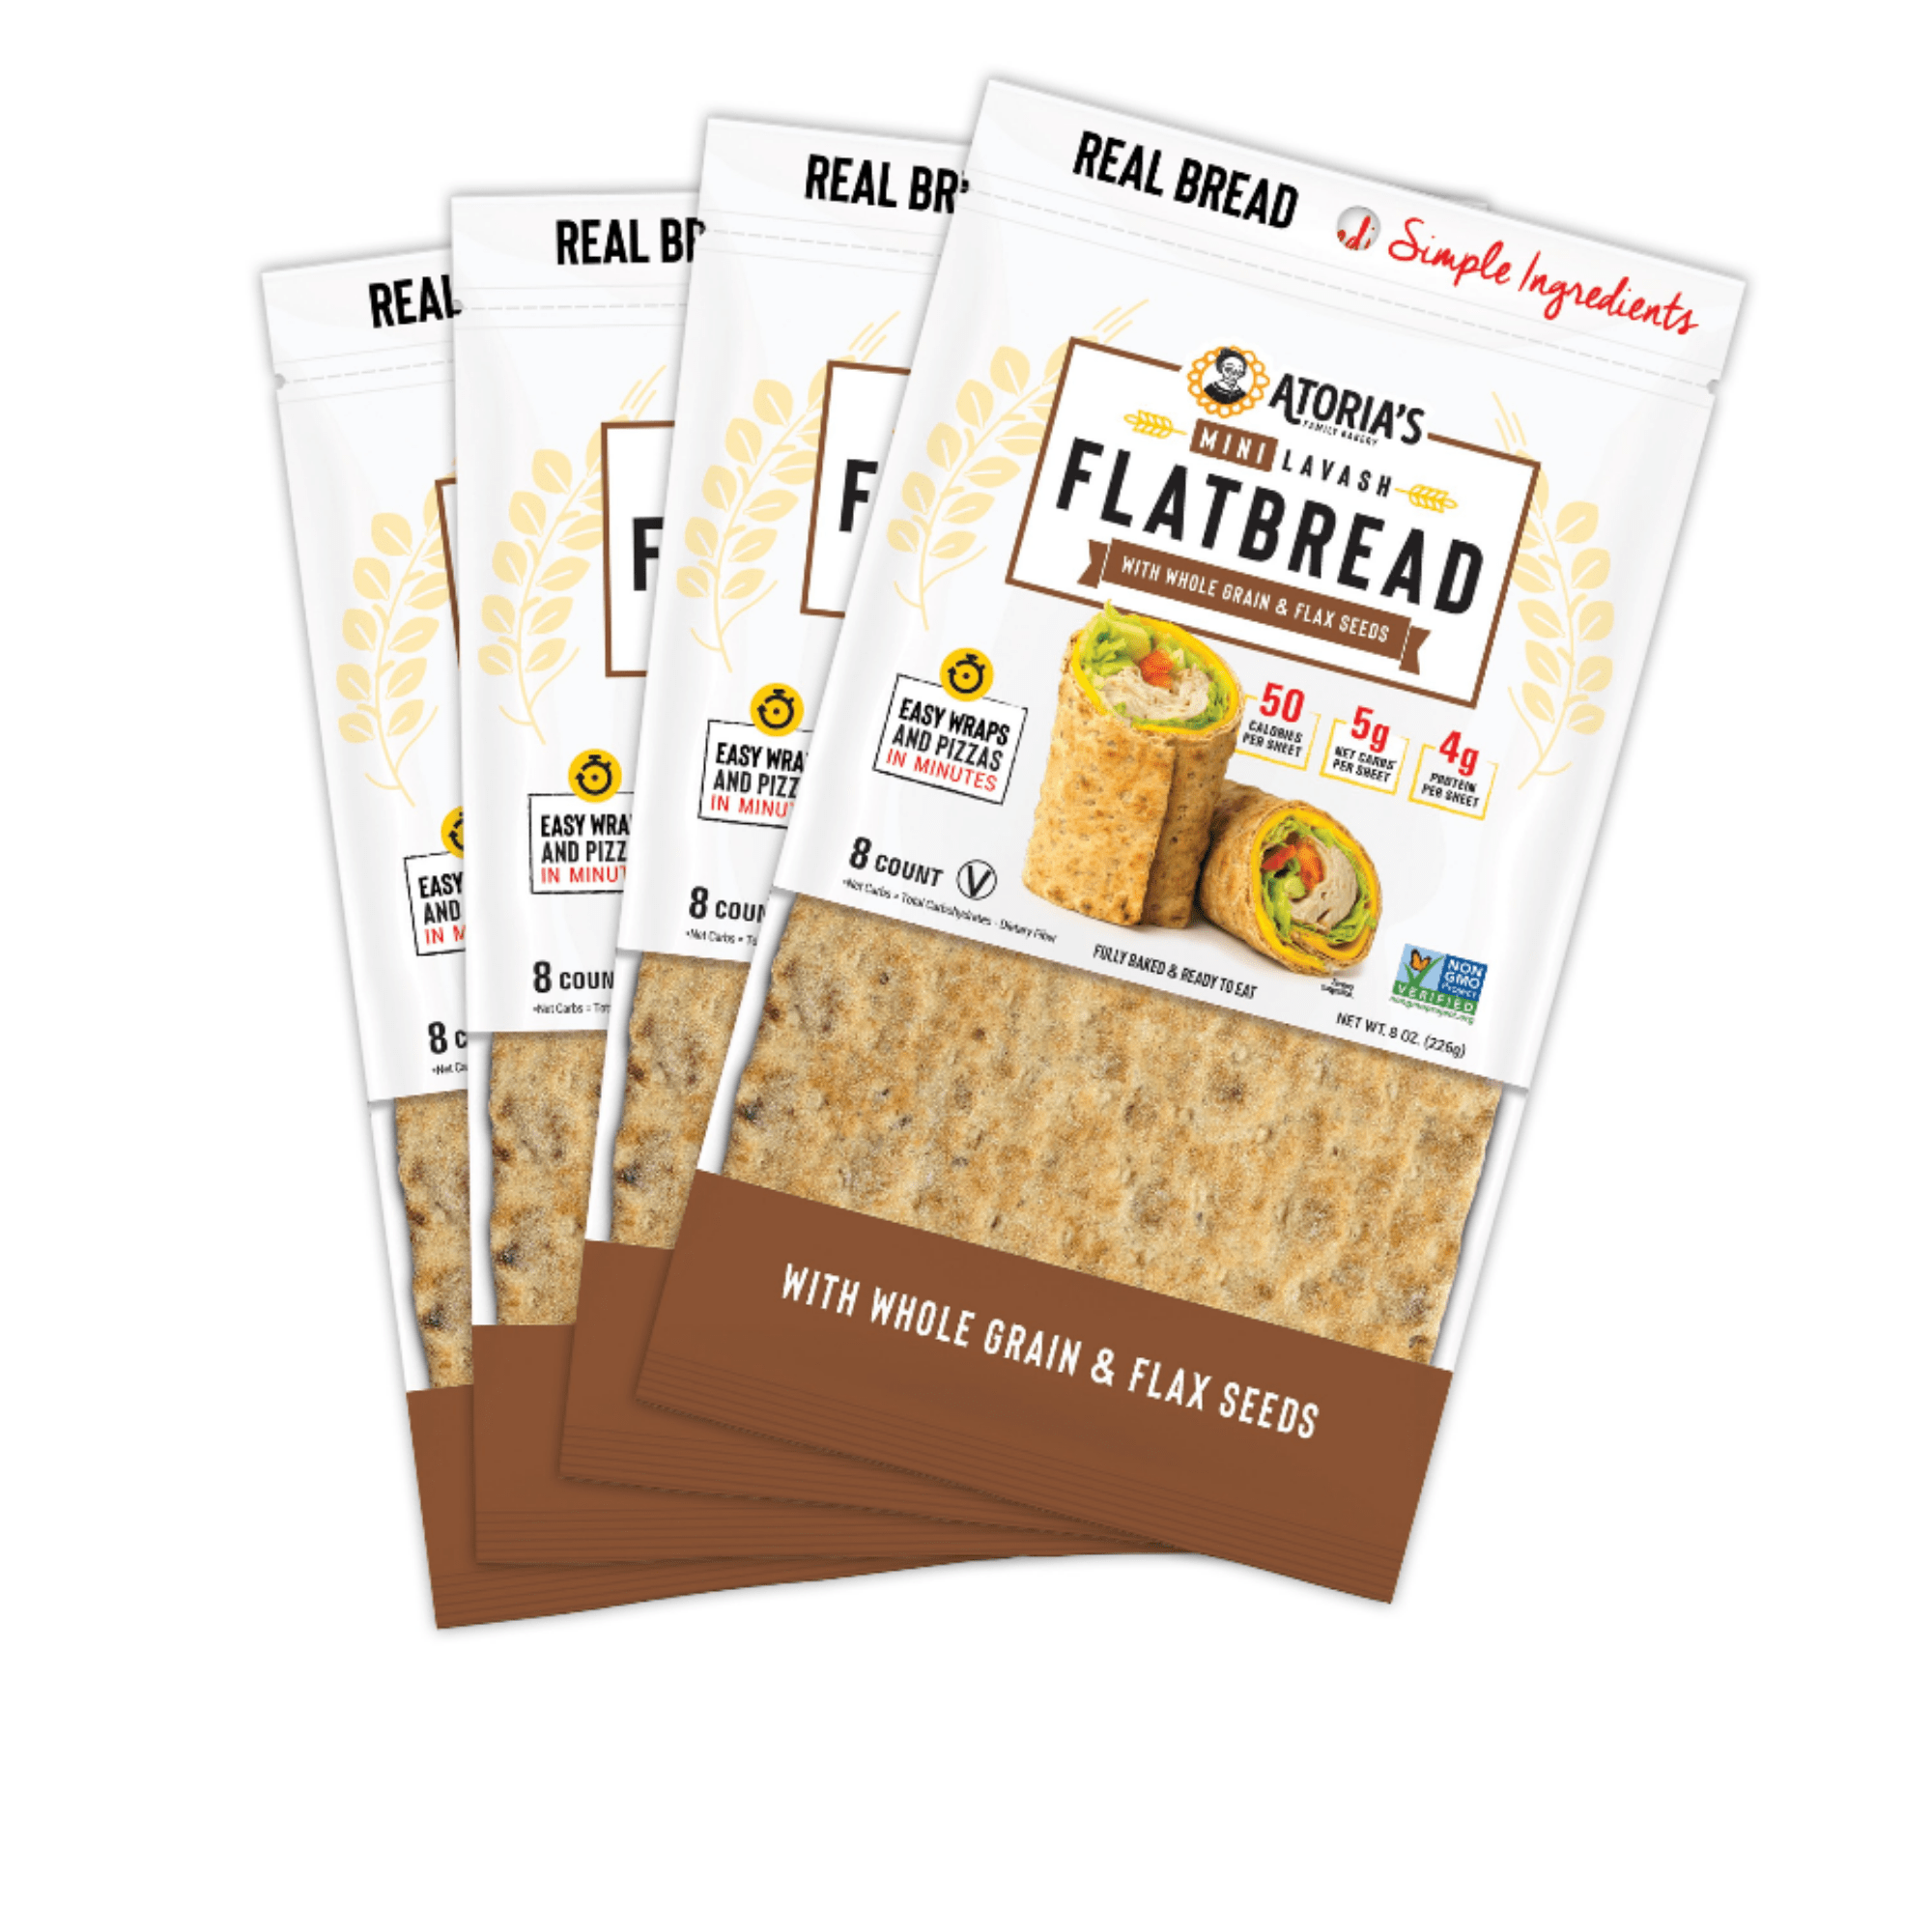 Atoria's Family Bakery Mini Lavash Flatbread Traditional. Easy wraps and pizzas in minutes. 60 calories per sheet. 9g net carbs per sheet. 4g protein per sheet. Keto friendly. 8 count per package. Fully baked and ready to eat.